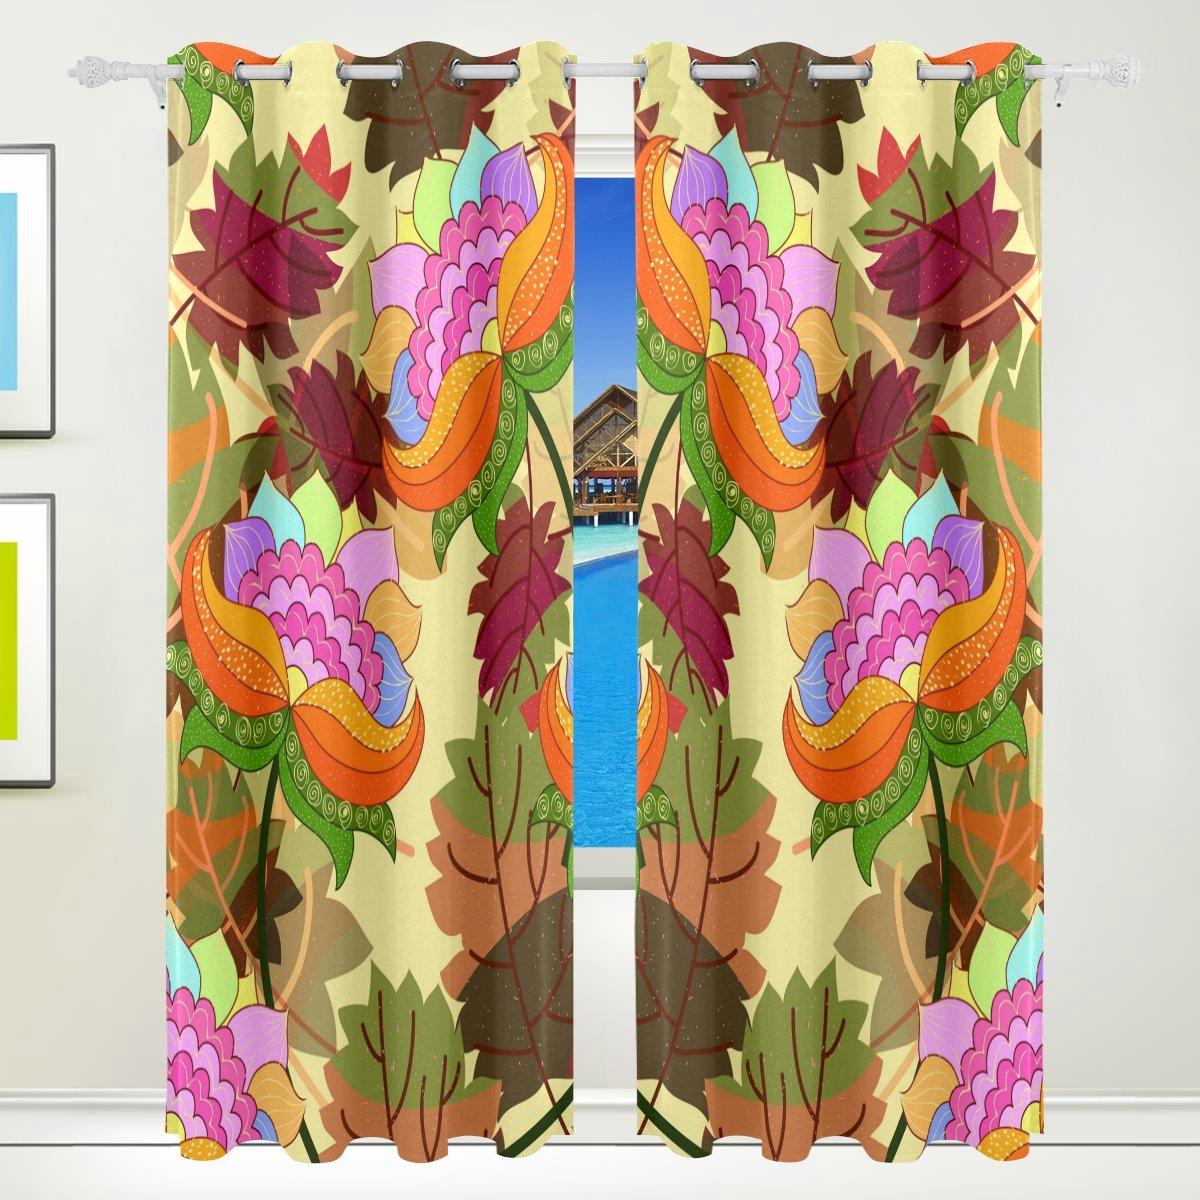 Vantaso Light Shading Window Curtains Abstract Flowers With Leaves Polyester 2 Pannels for Kids Girls Boys Bedroom Living Room 84 inch x 55 inch